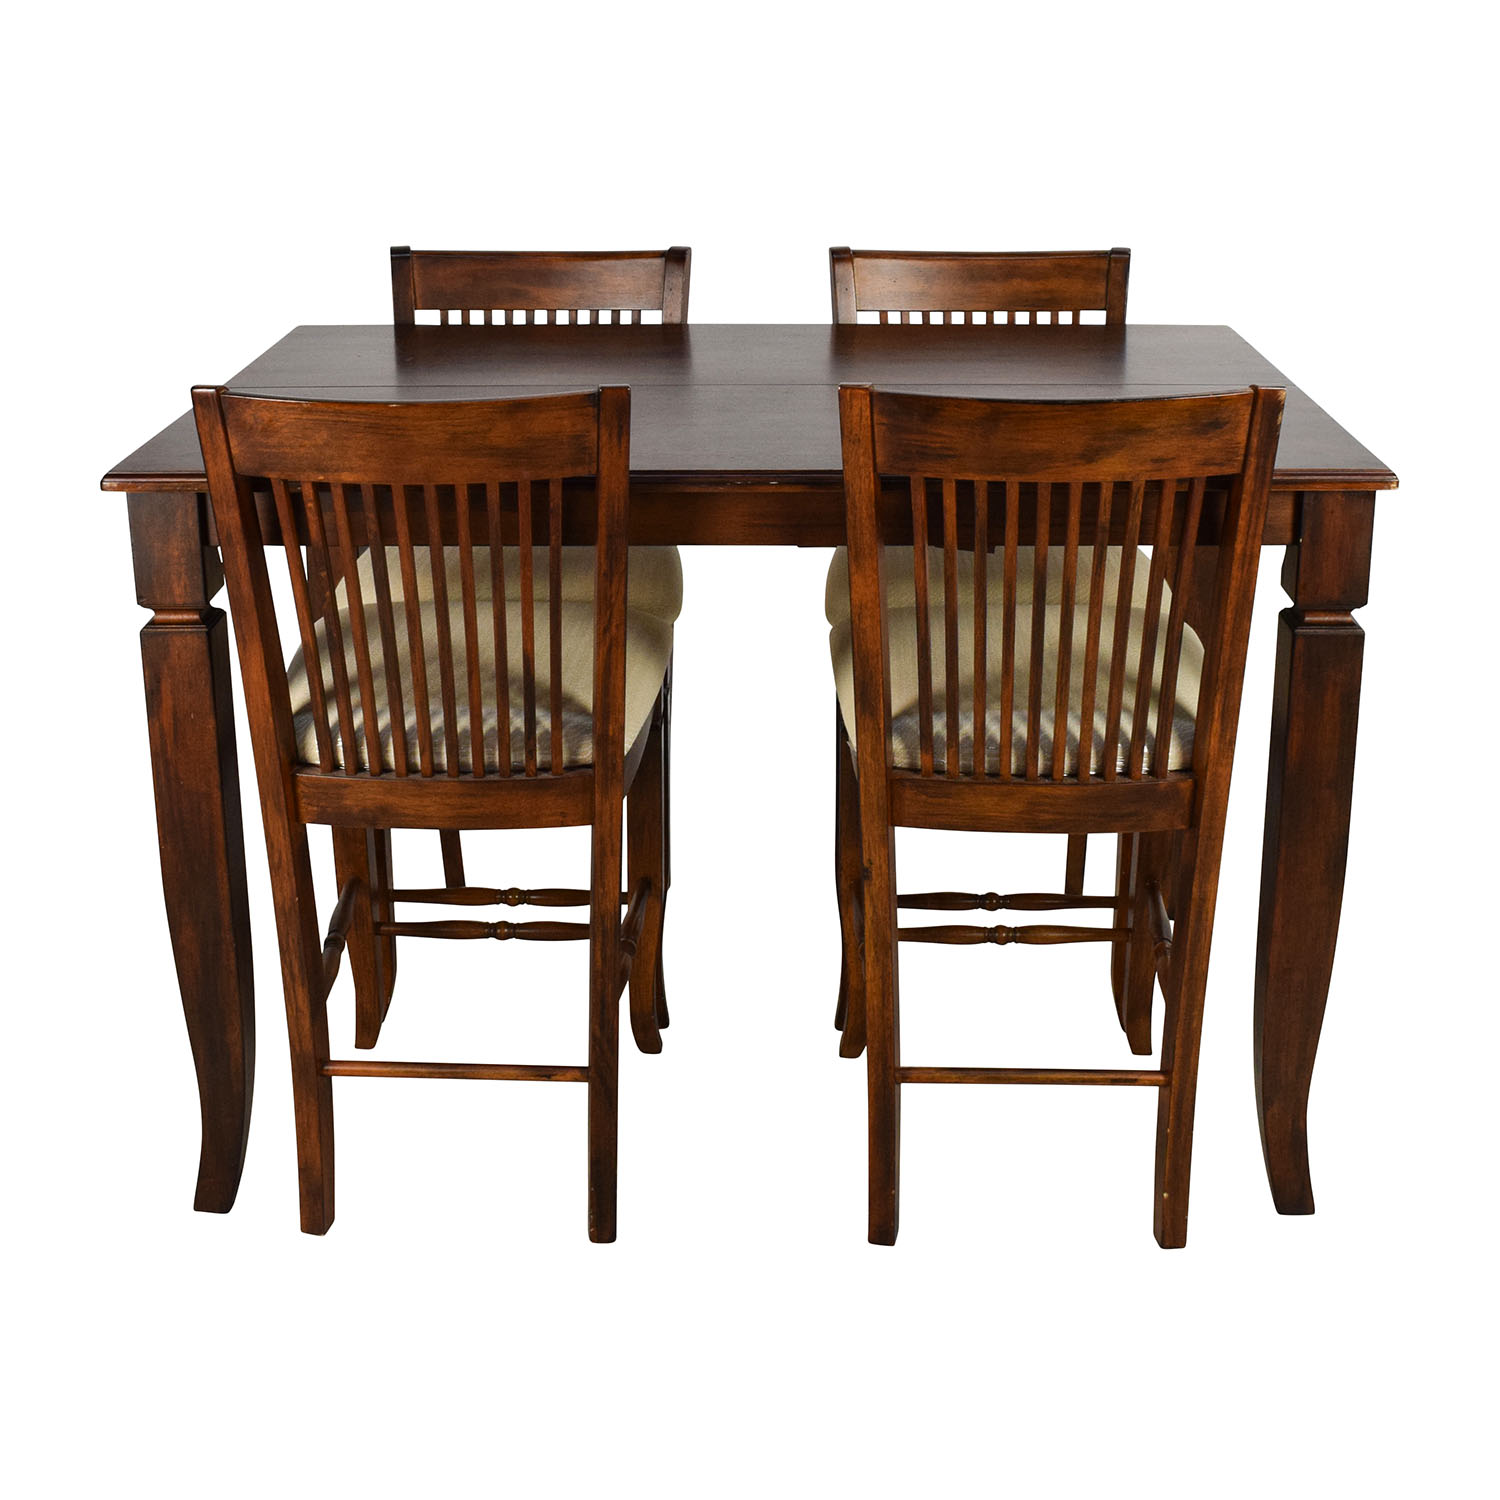 Dining Table Rollins Dining Table: Tall Extendable Dining Room Table Set / Tables